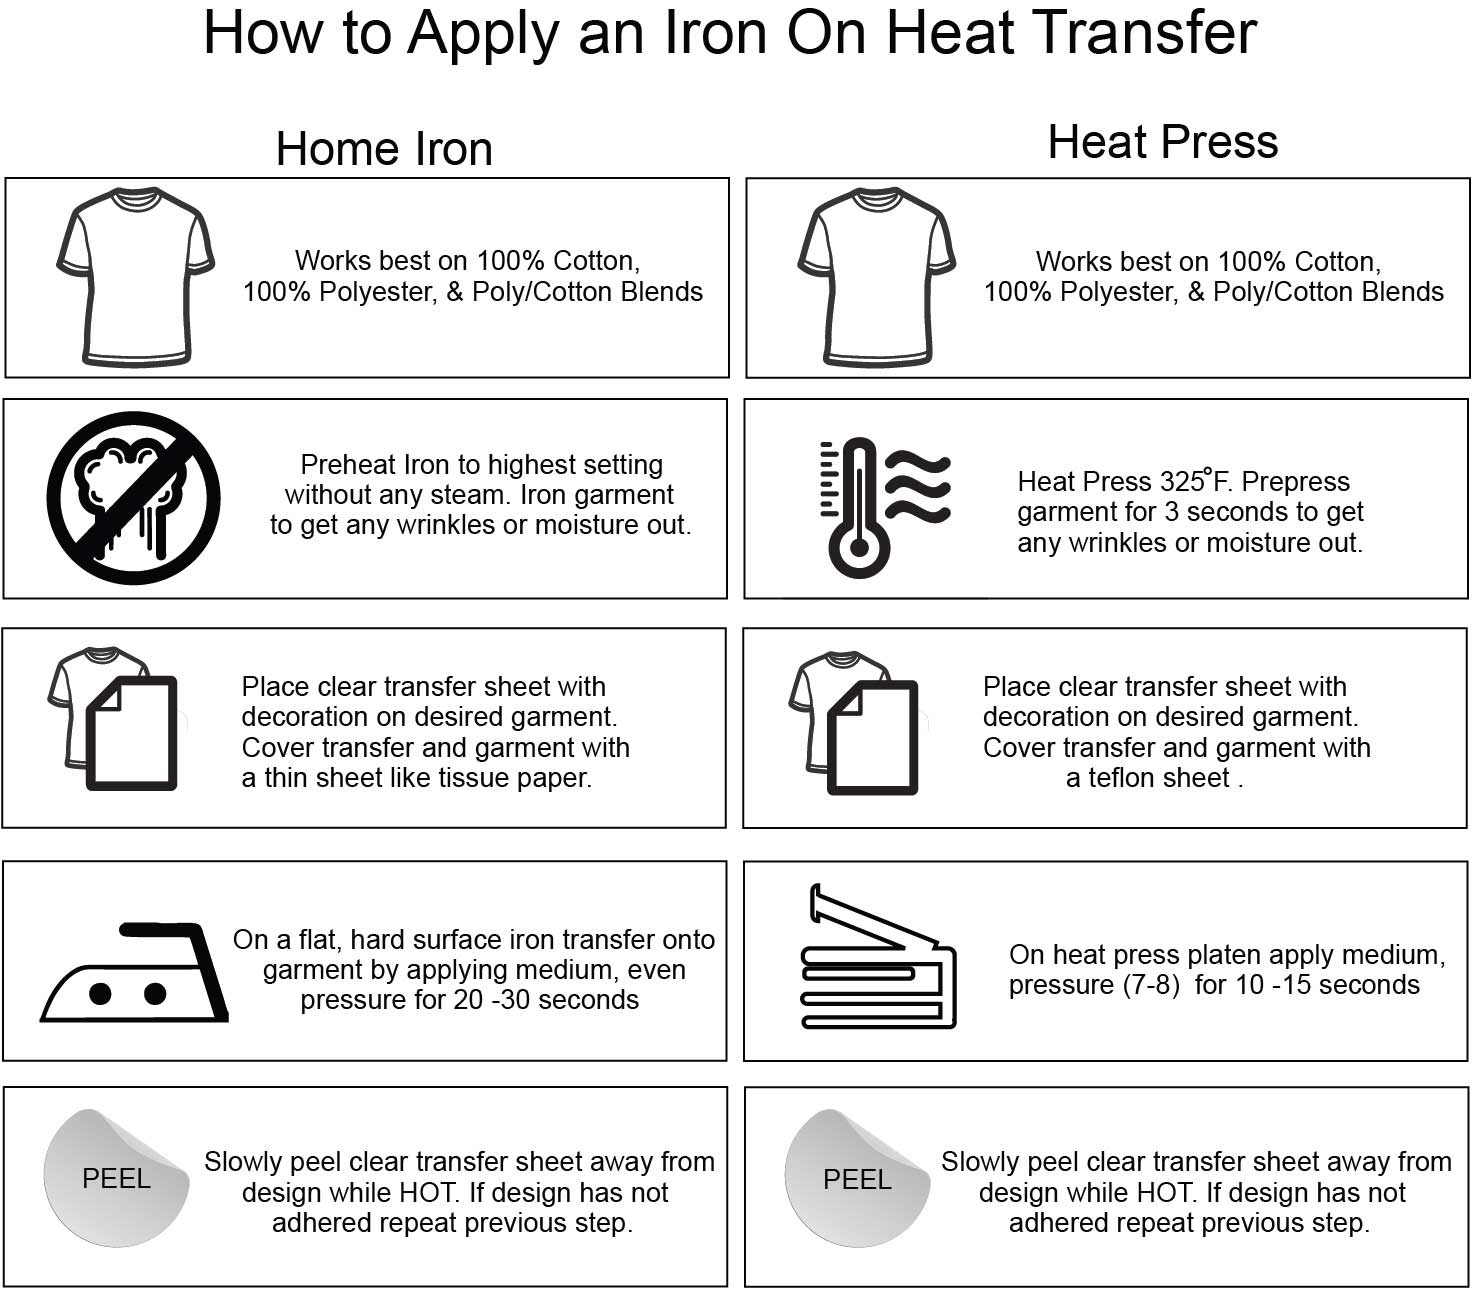 Iron On Transfer Instructions